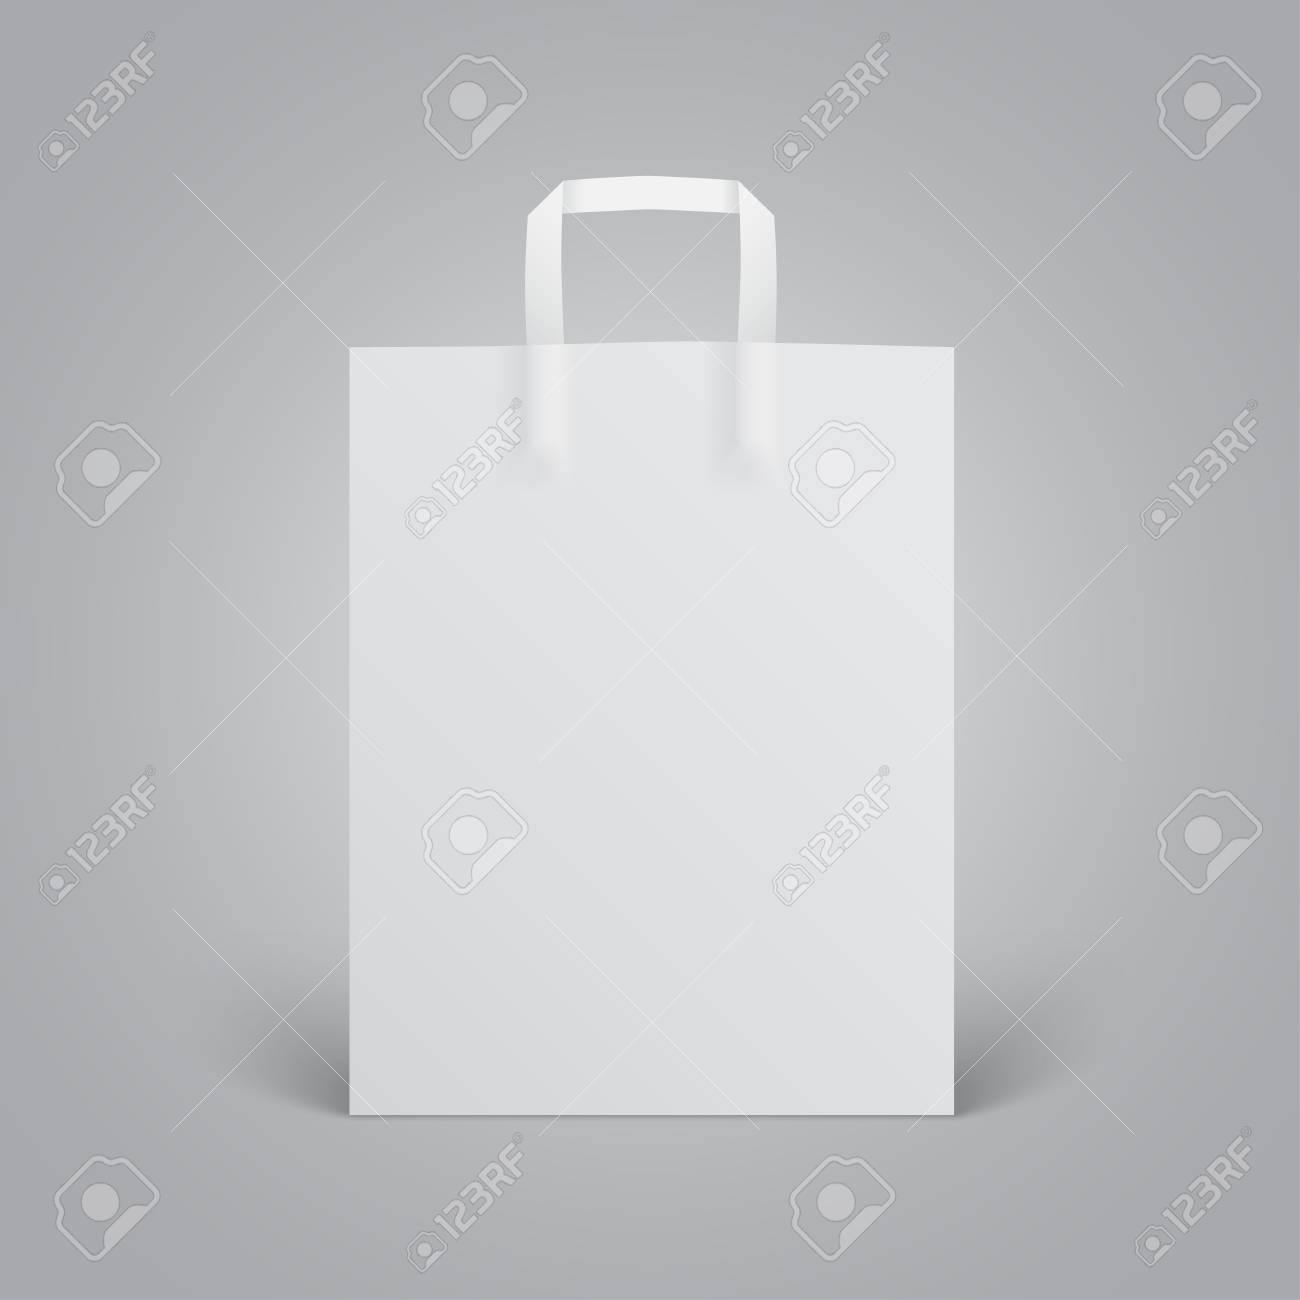 So work on your shopping bag designs with the free shopping bag mockup psd files which can be downloaded and edited like. White Paper Bag Mockup With Handles On Grey Background Royalty Free Cliparts Vectors And Stock Illustration Image 72740215